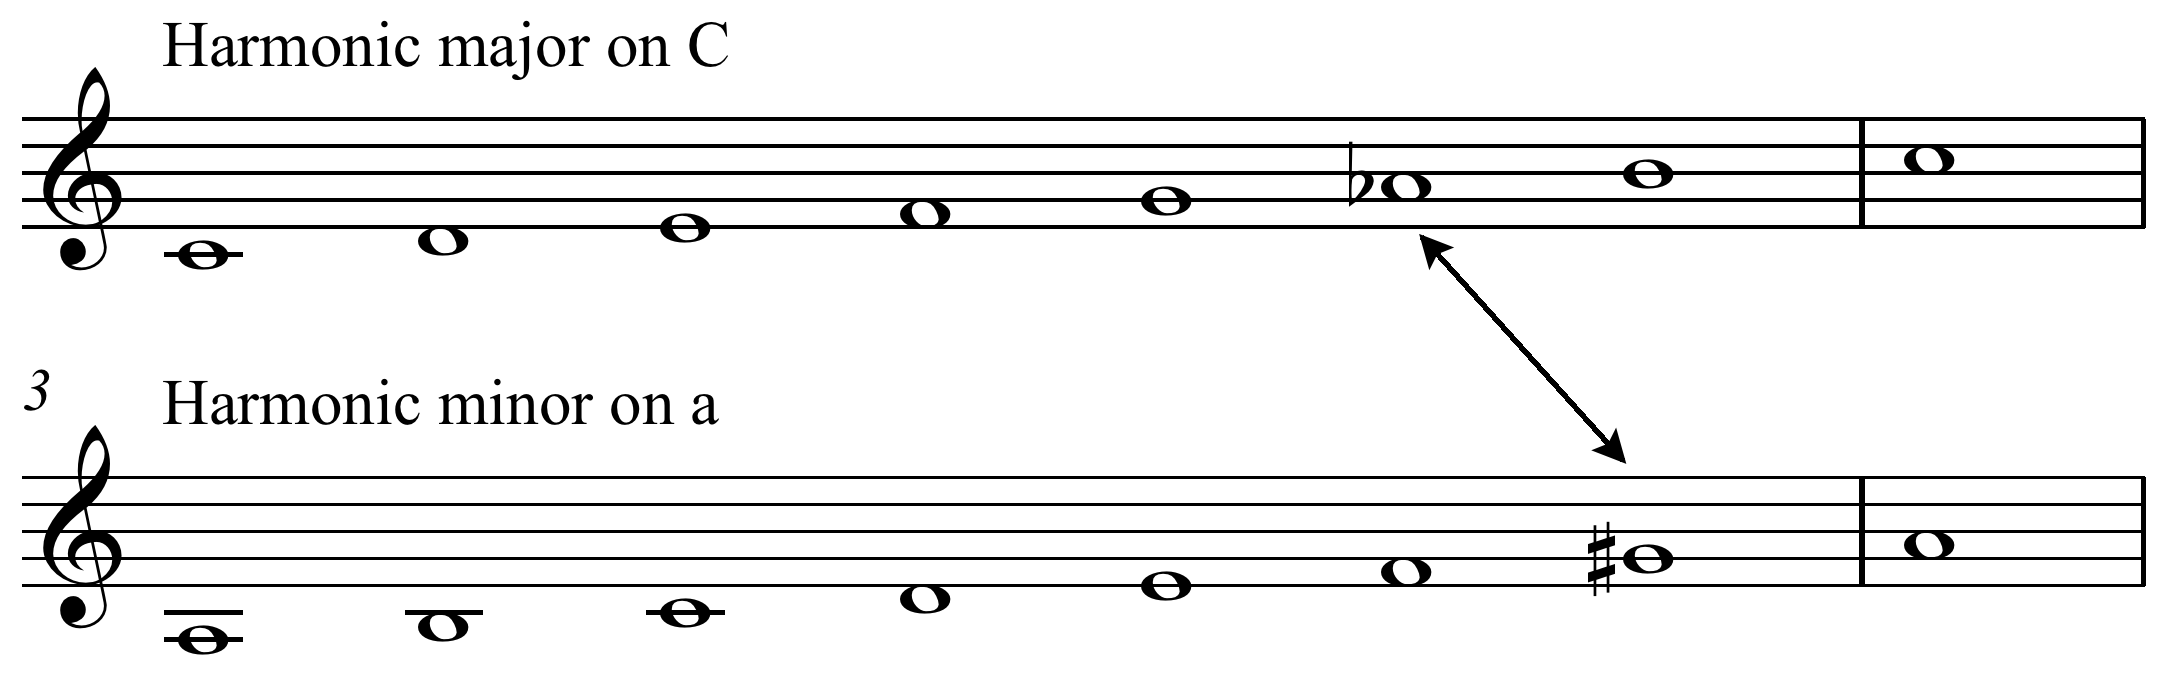 fileharmonic major scale c harmonic minor scale apng